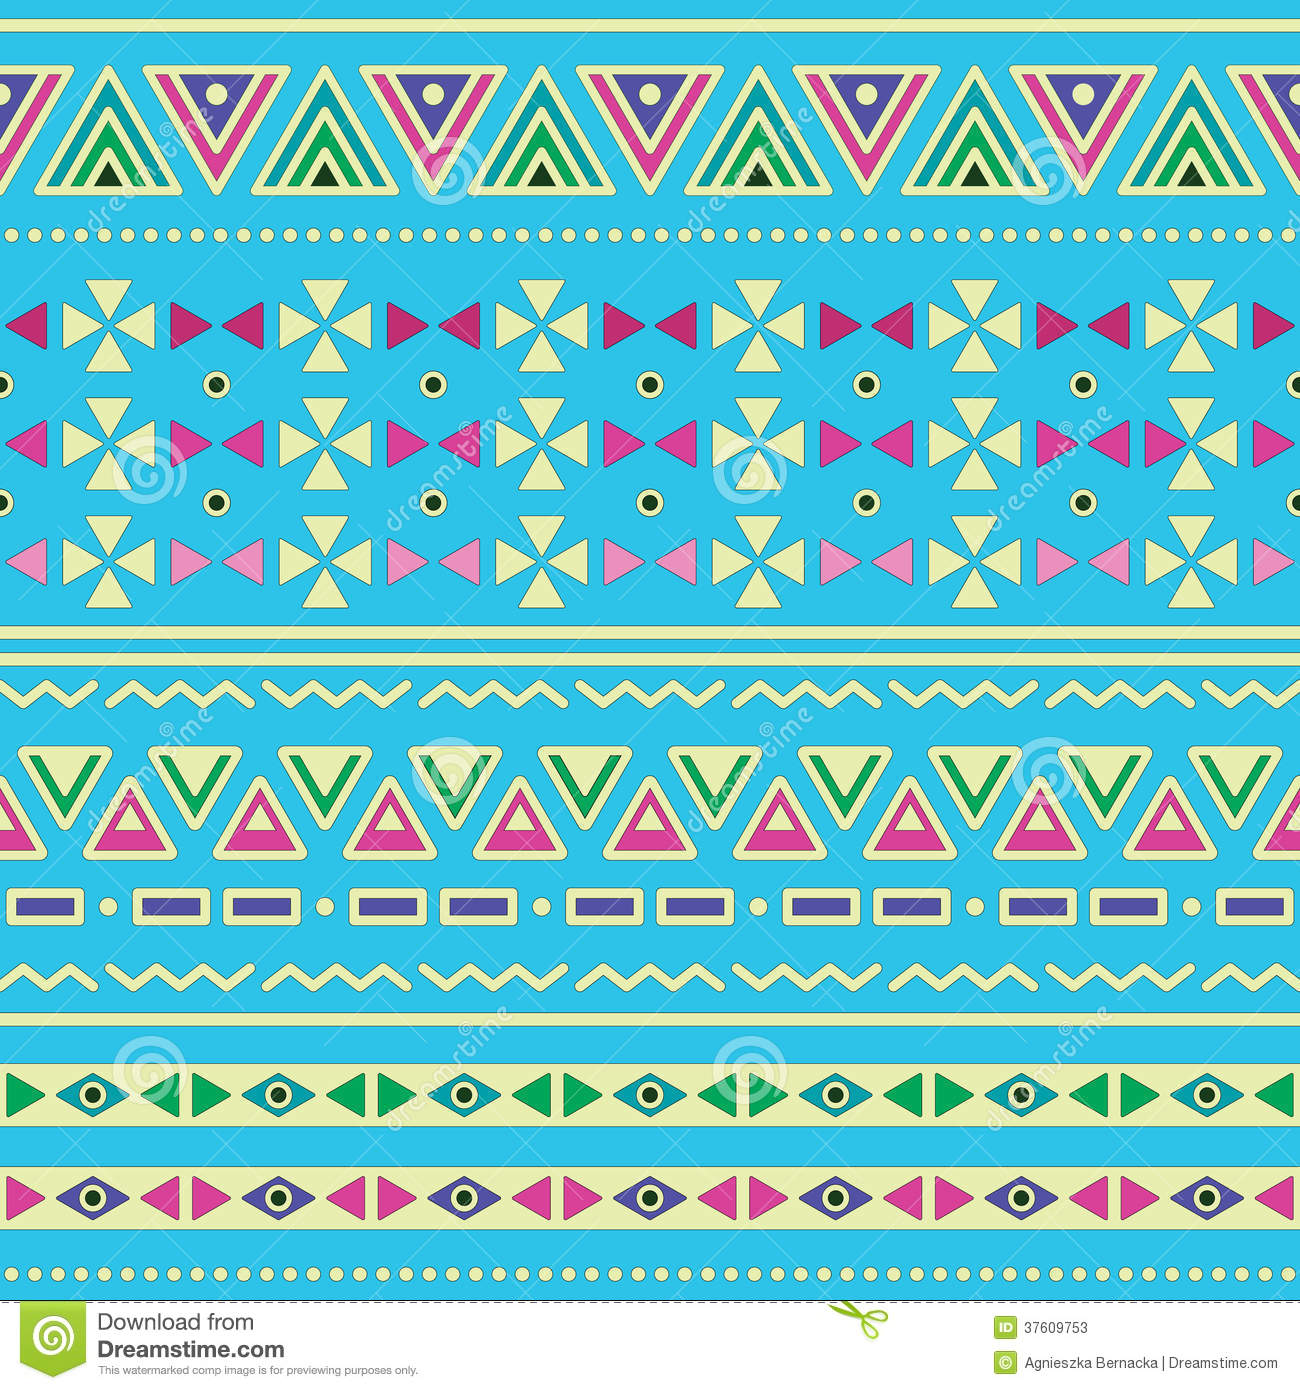 Blue Tribal Wallpapers: Tribal Ethinc Ztec Seamless Pattern On Blue Background